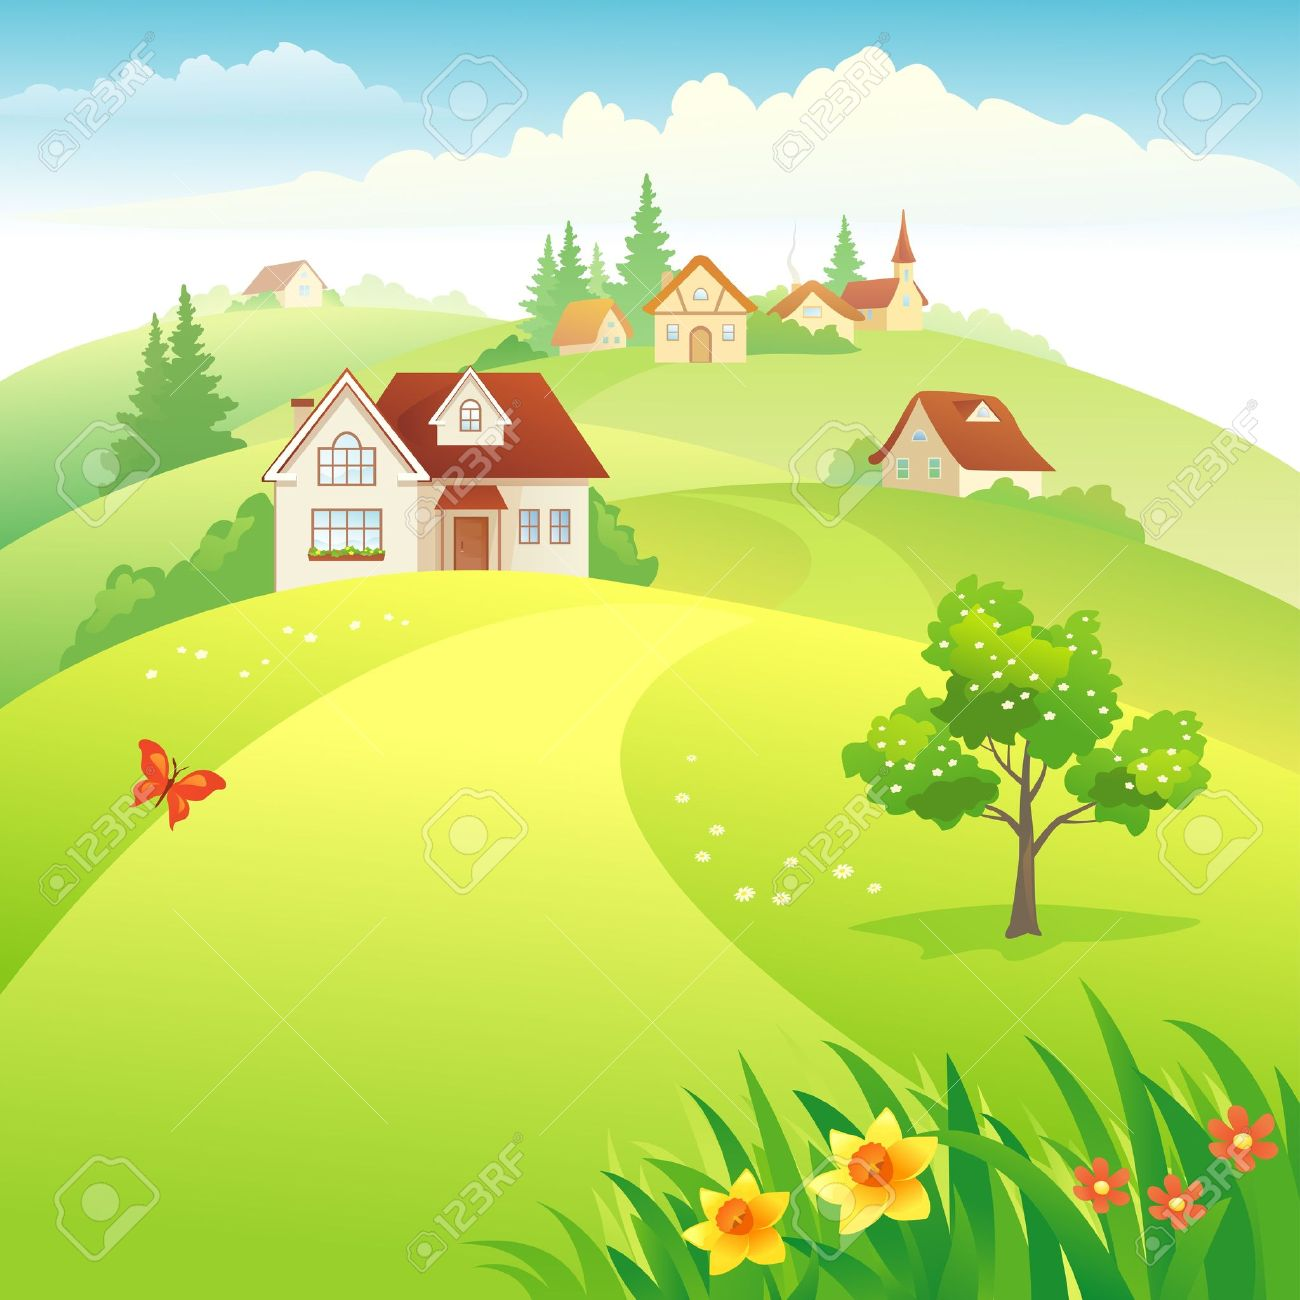 Village clipart rural place.